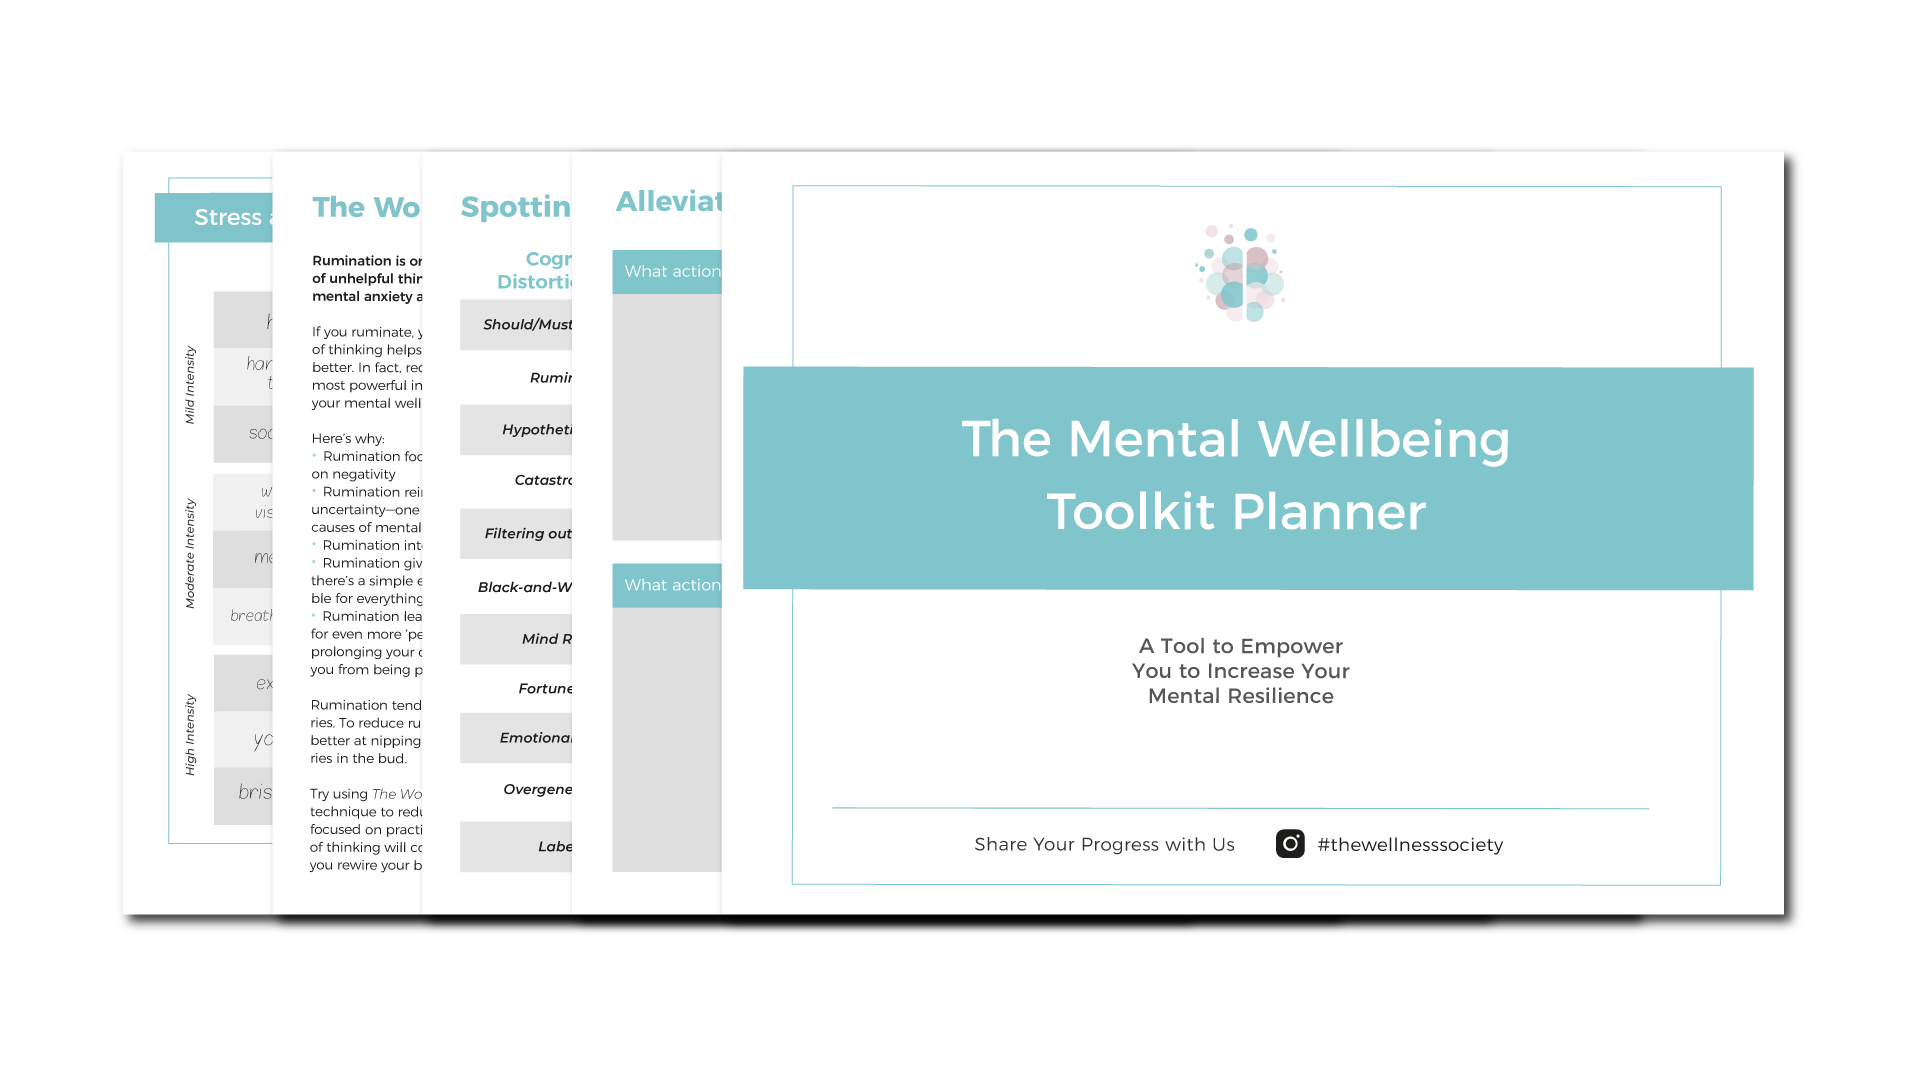 The Mental Wellbeing Toolkit Planner